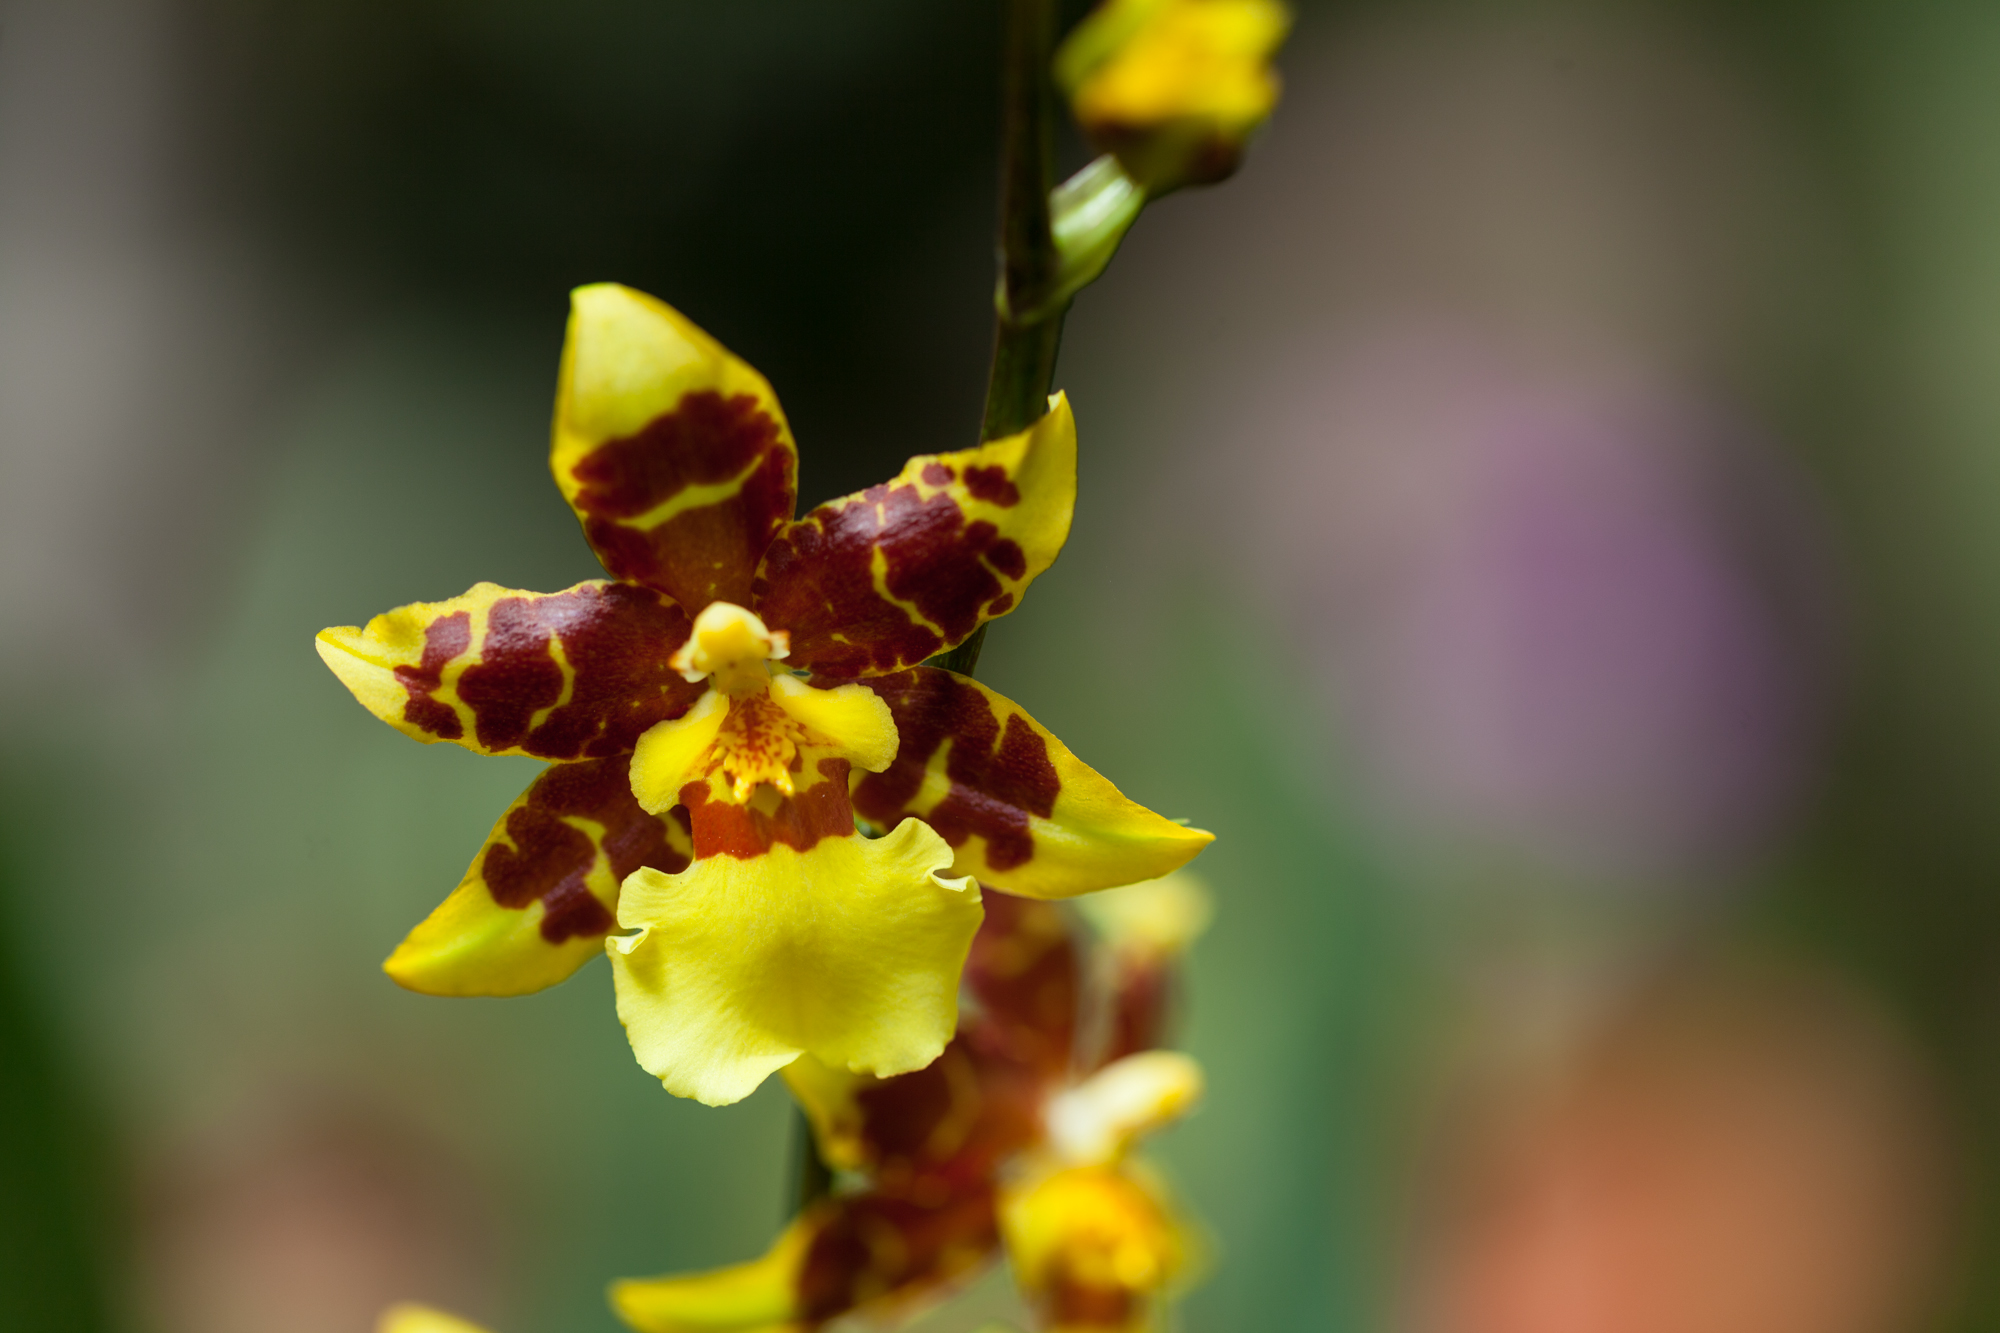 An  Oncidium  or dancing lady orchid, which was also prominently displayed at the New York Botanical Garden Orchid Show as well.